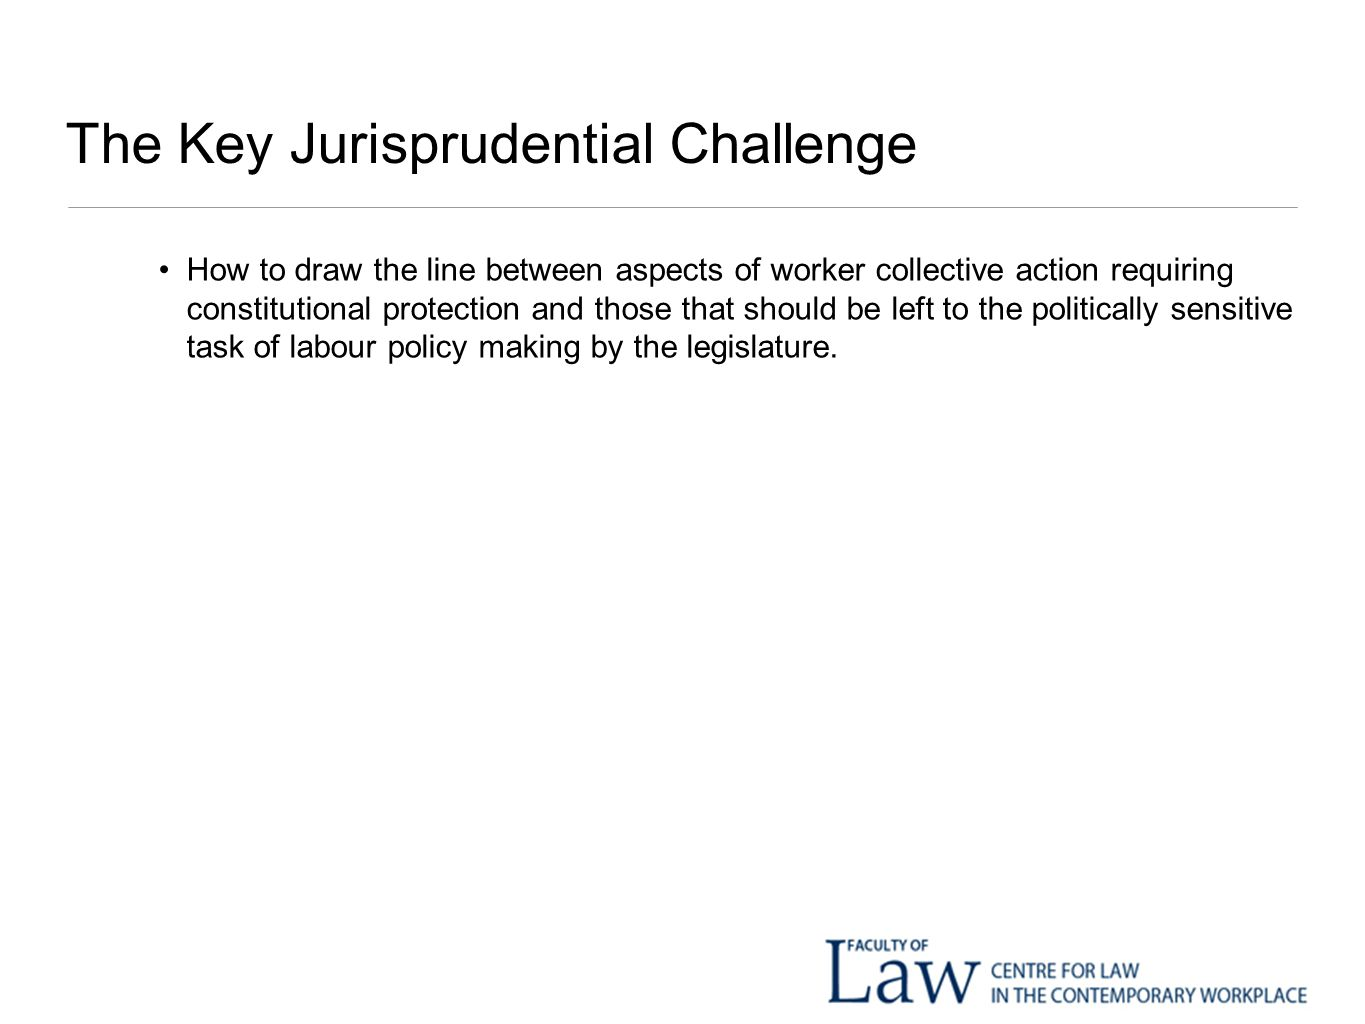 The Key Jurisprudential Challenge How to draw the line between aspects of worker collective action requiring constitutional protection and those that should be left to the politically sensitive task of labour policy making by the legislature.